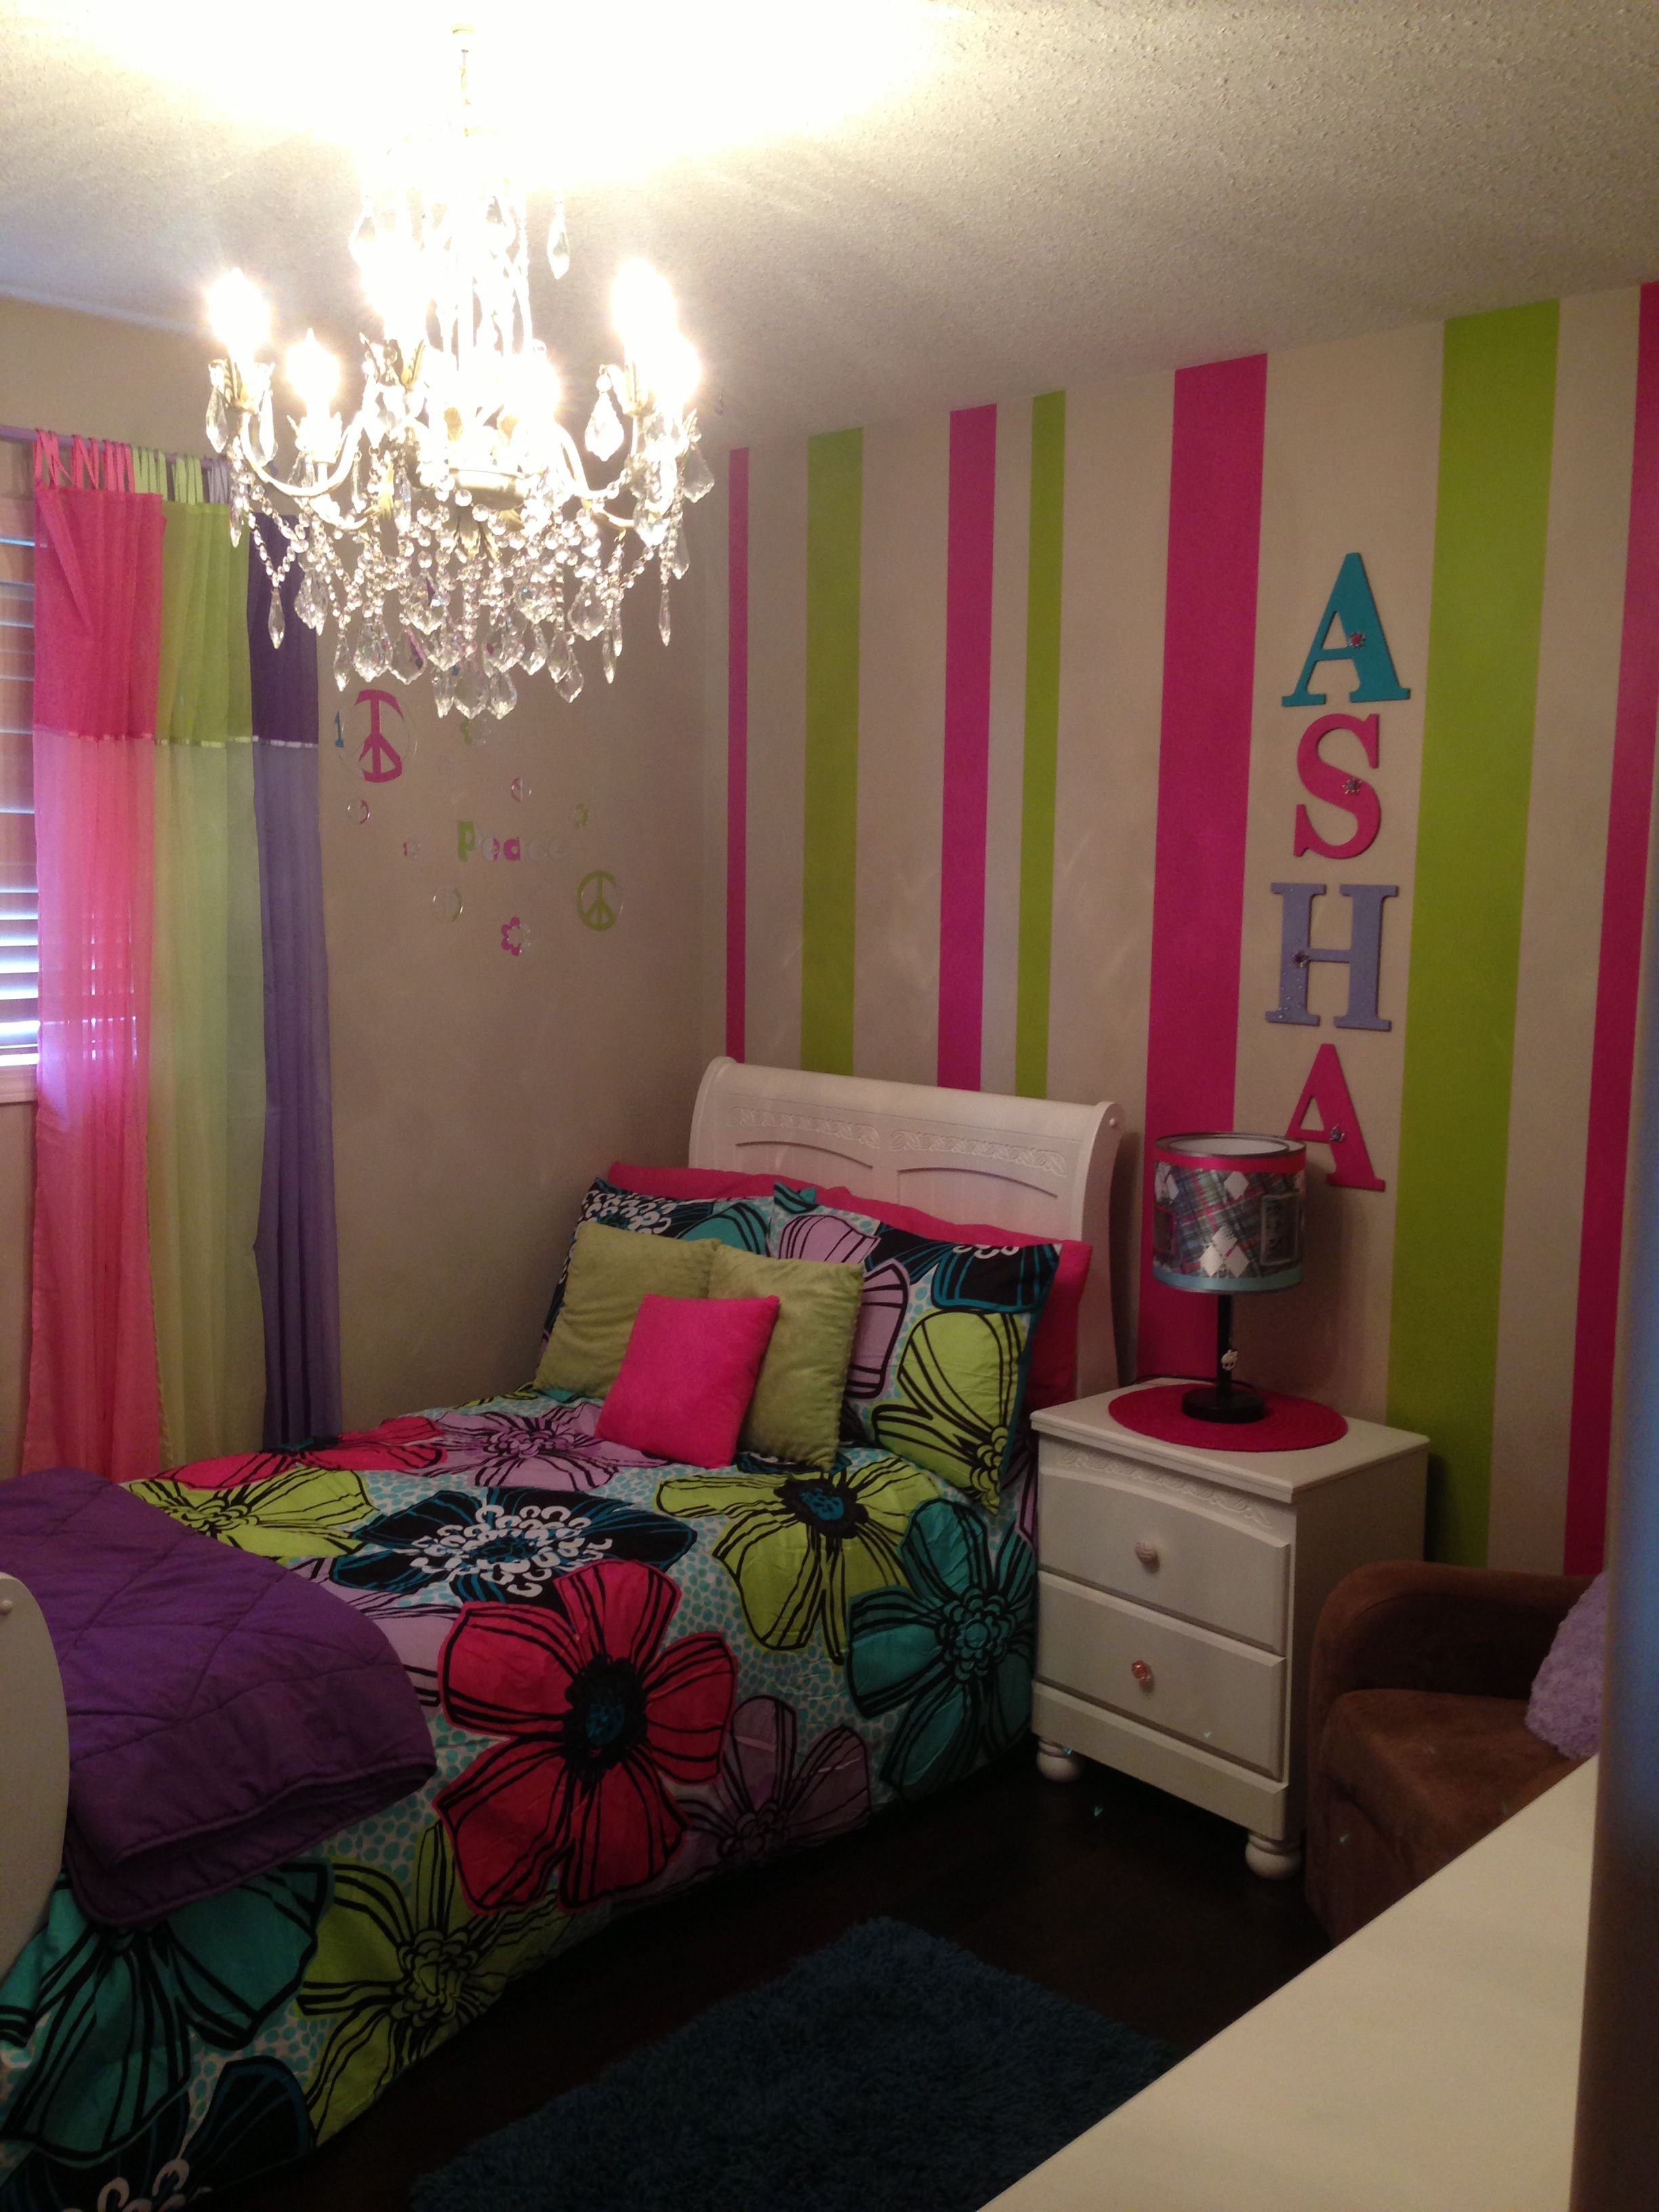 vertical stripes and name on the wall Girls bedroom